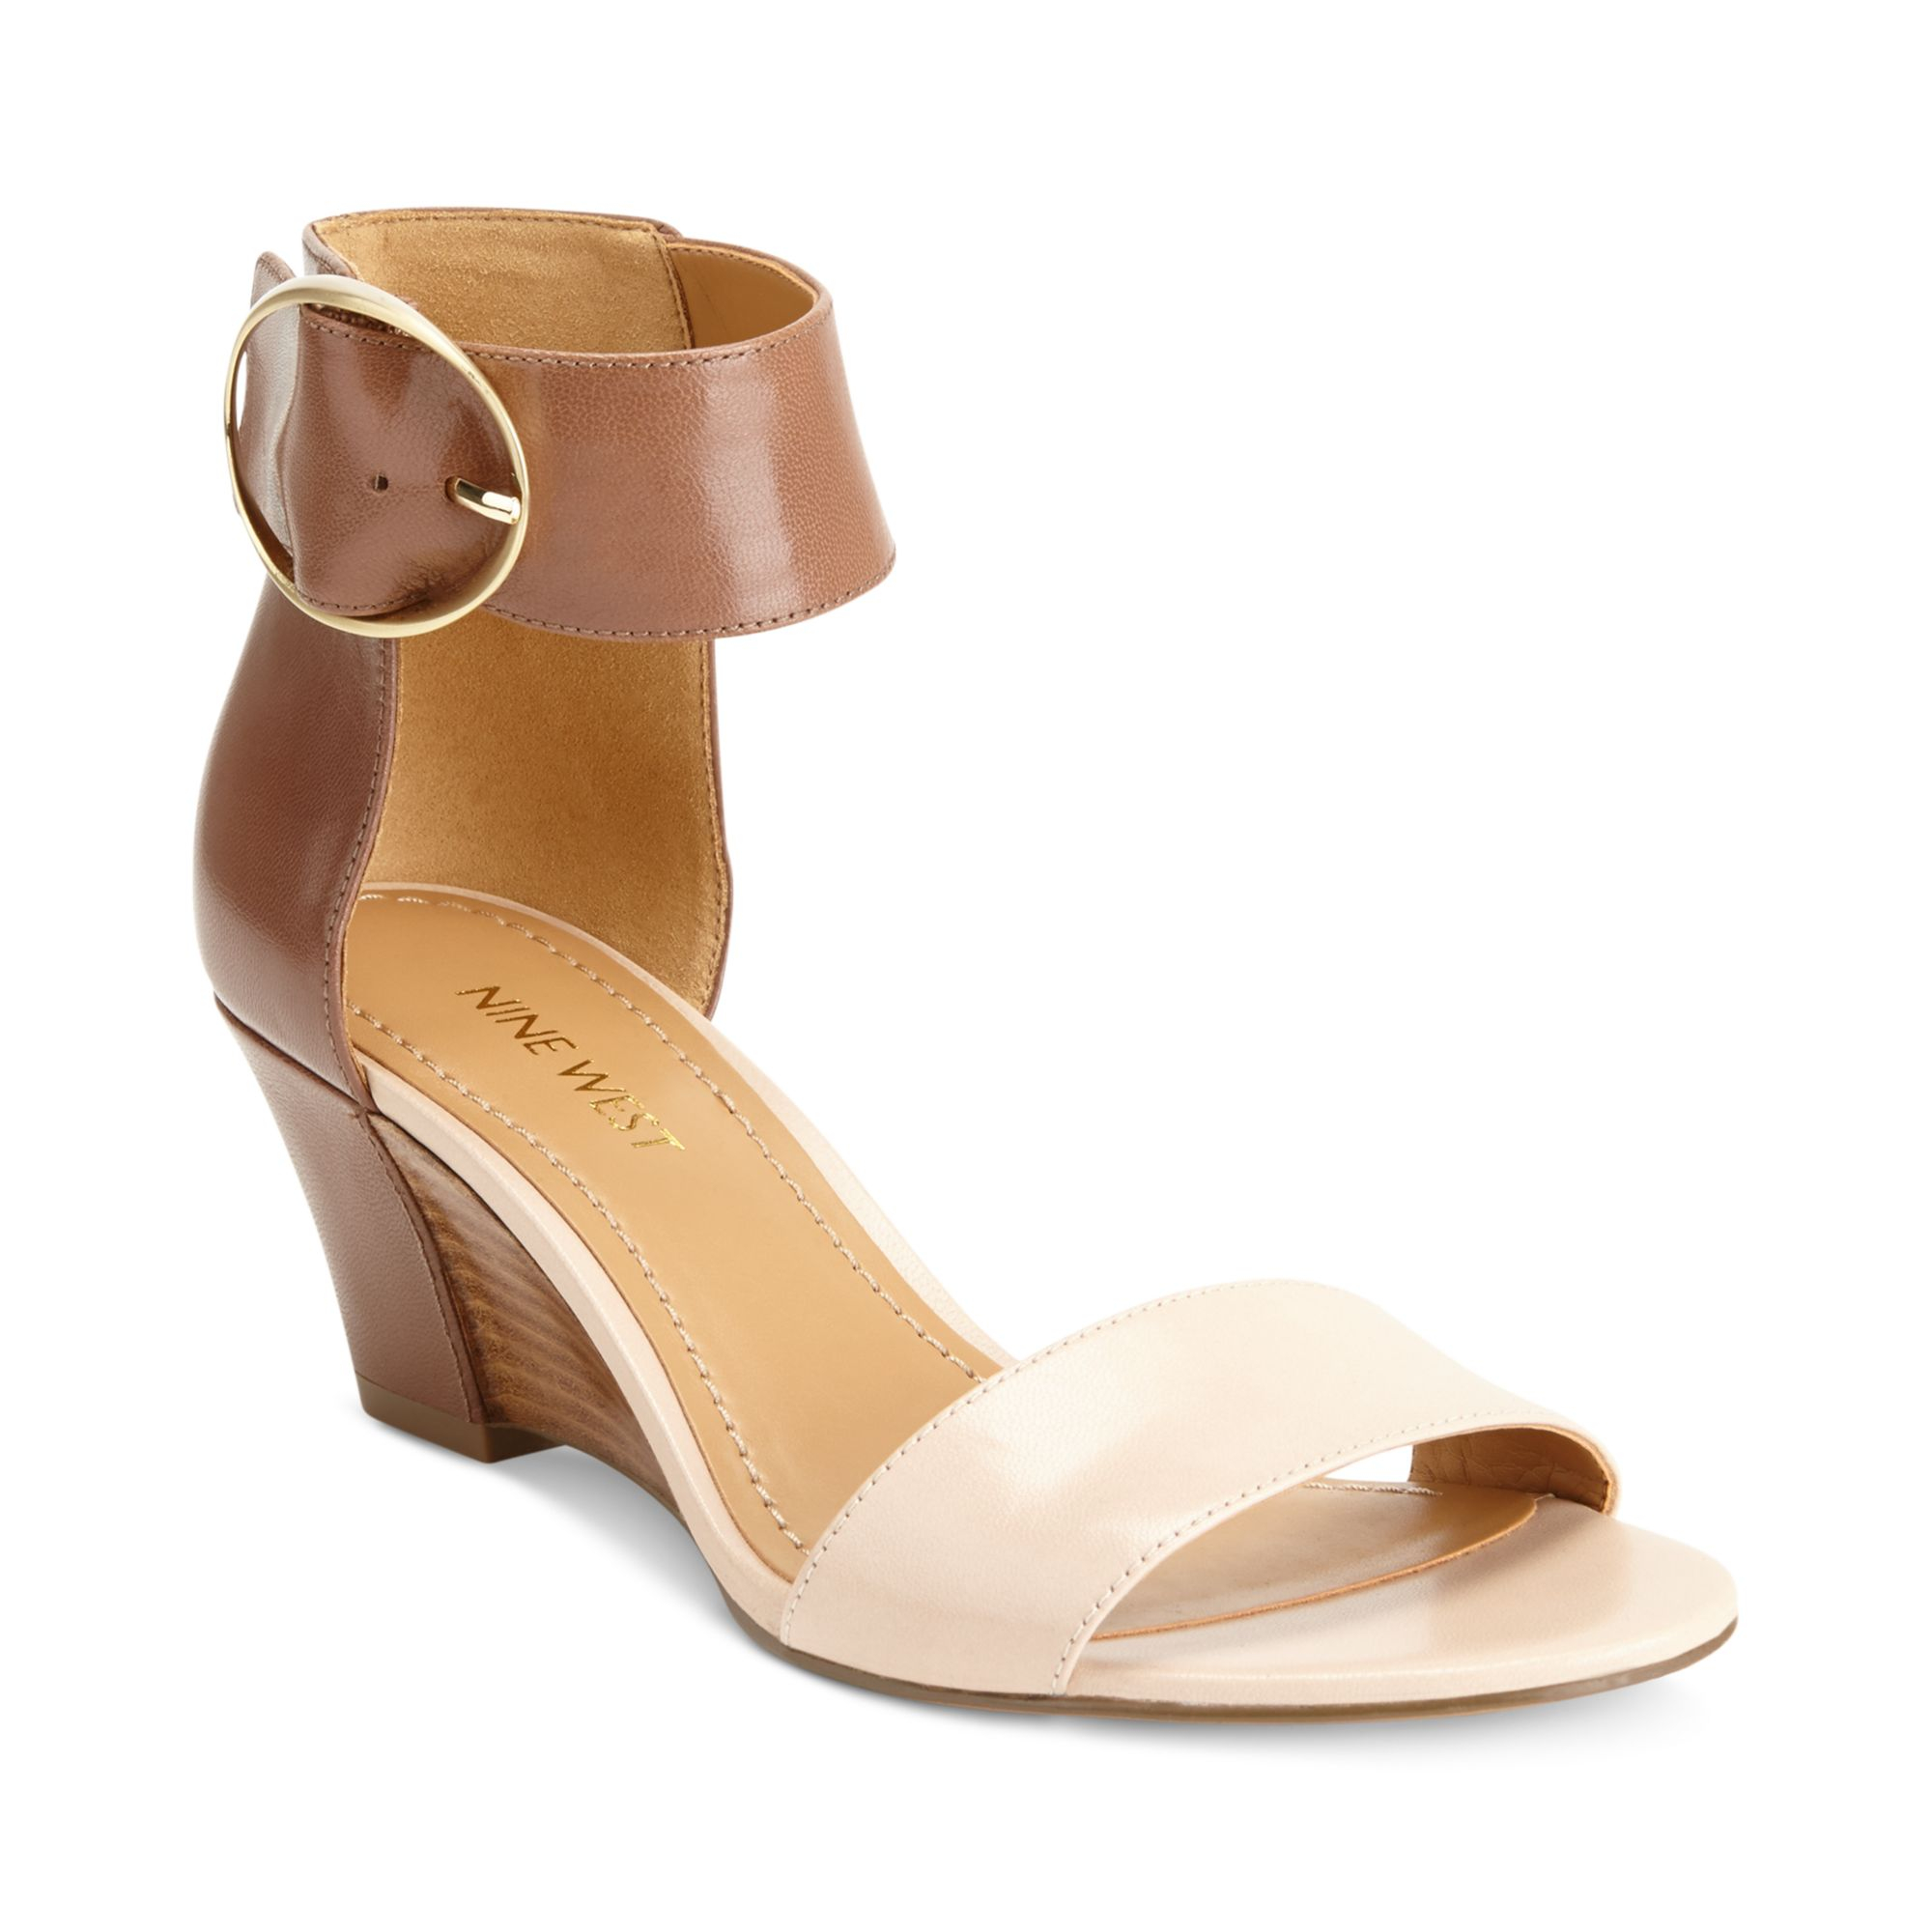 005e2748b57 Lyst - Nine West Ventana Ankle Strap Demi Wedge Sandals in Brown